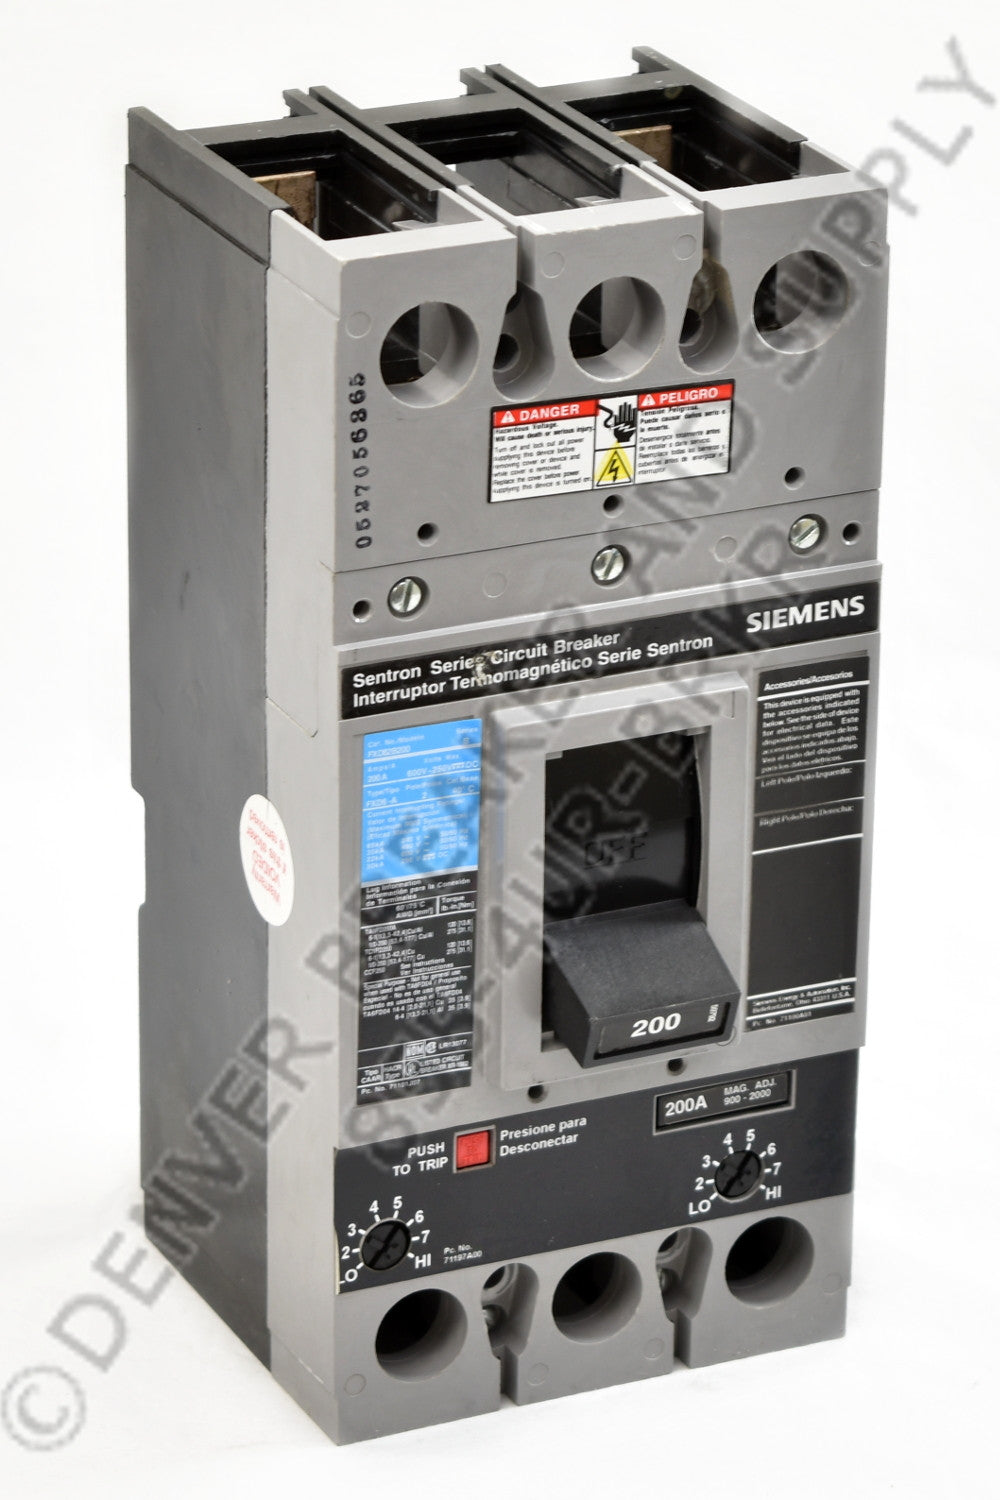 Siemens FD62B070 Circuit Breakers